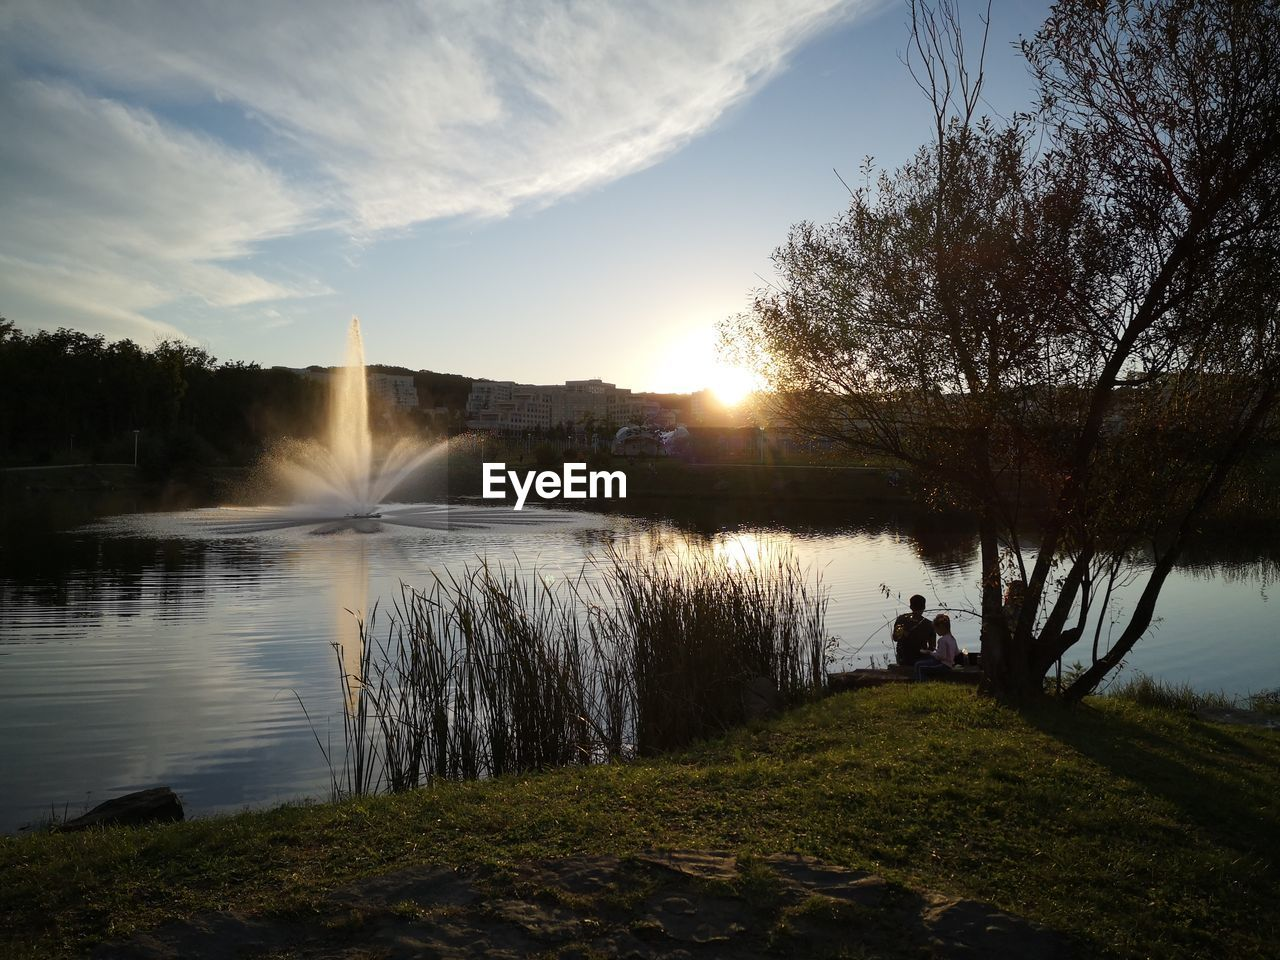 water, sky, plant, scenics - nature, tree, lake, beauty in nature, nature, sun, tranquility, cloud - sky, grass, tranquil scene, non-urban scene, sunbeam, sunlight, sunset, reflection, real people, outdoors, lens flare, flowing water, spraying